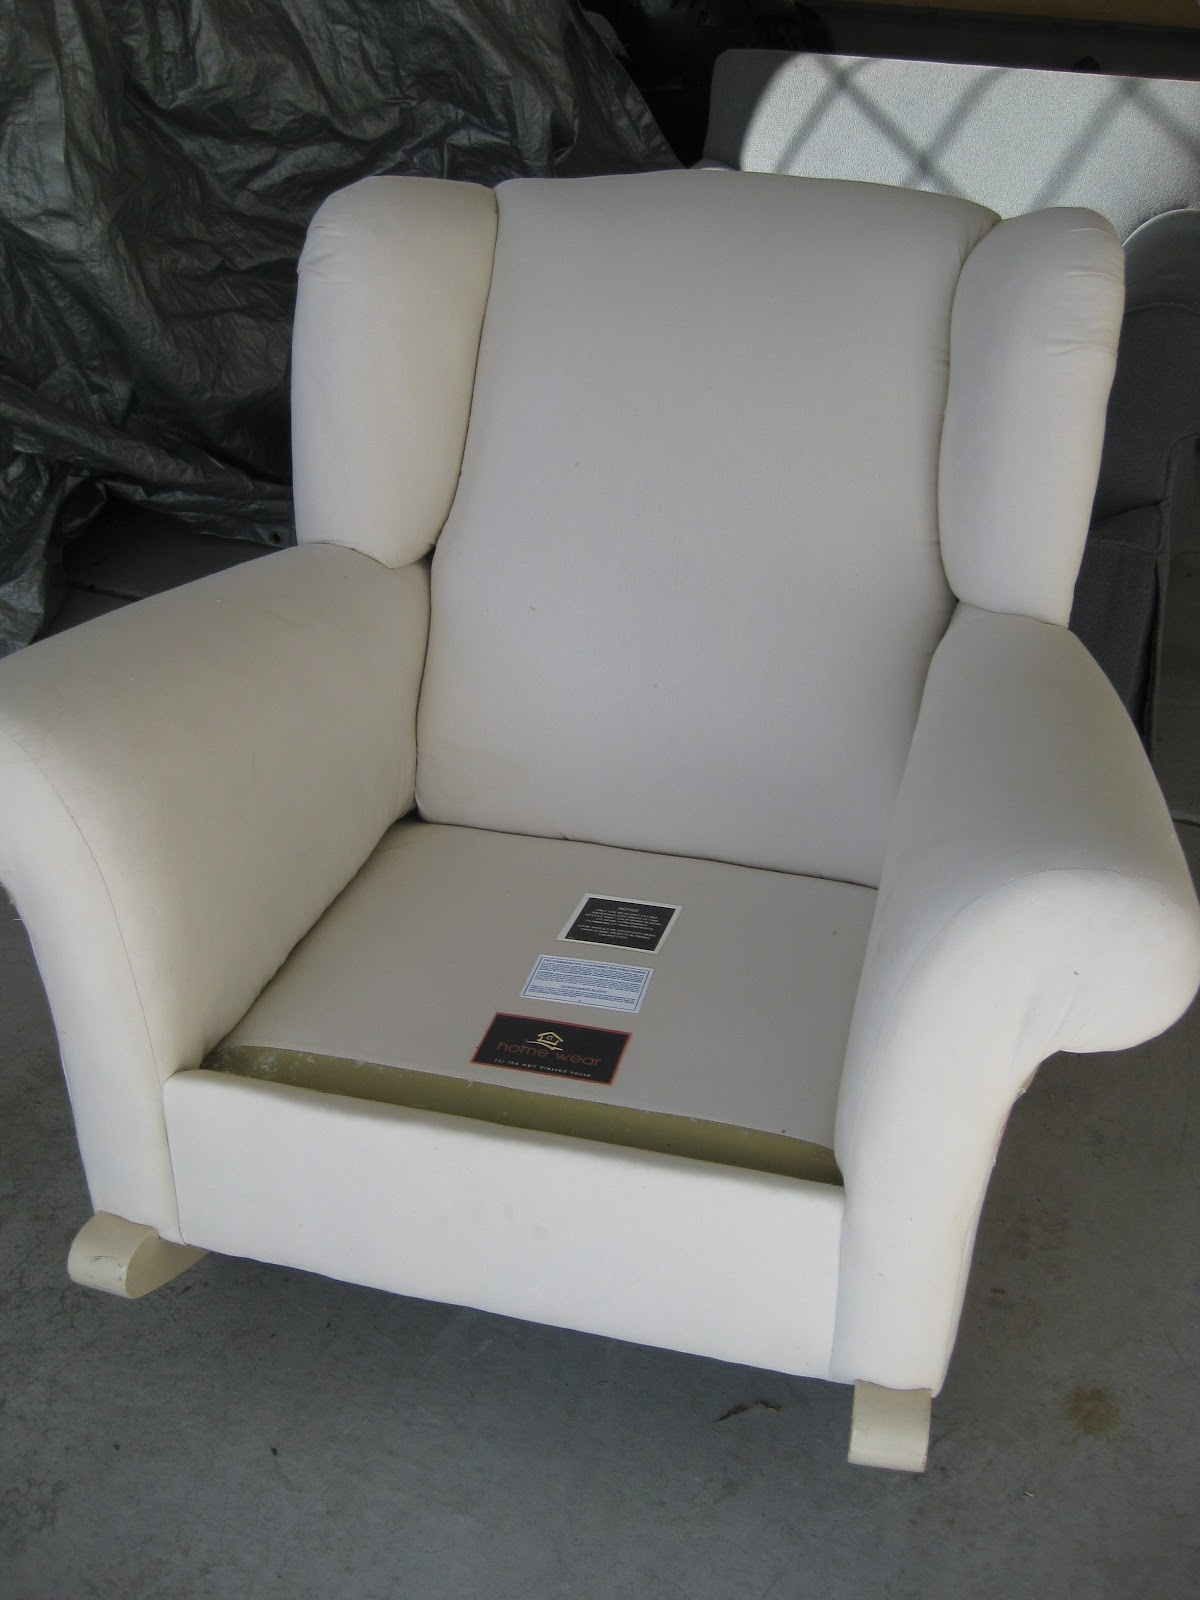 sale slipcovers x arm to surepit purple slipcover rooms go patterned accent turquoise design blue for green decorating grey high wingback covers red wing ac upholstered proportions chair back cheap winged navy leather decofurnish burgundy regarding beautiful furniture armchairs chairs